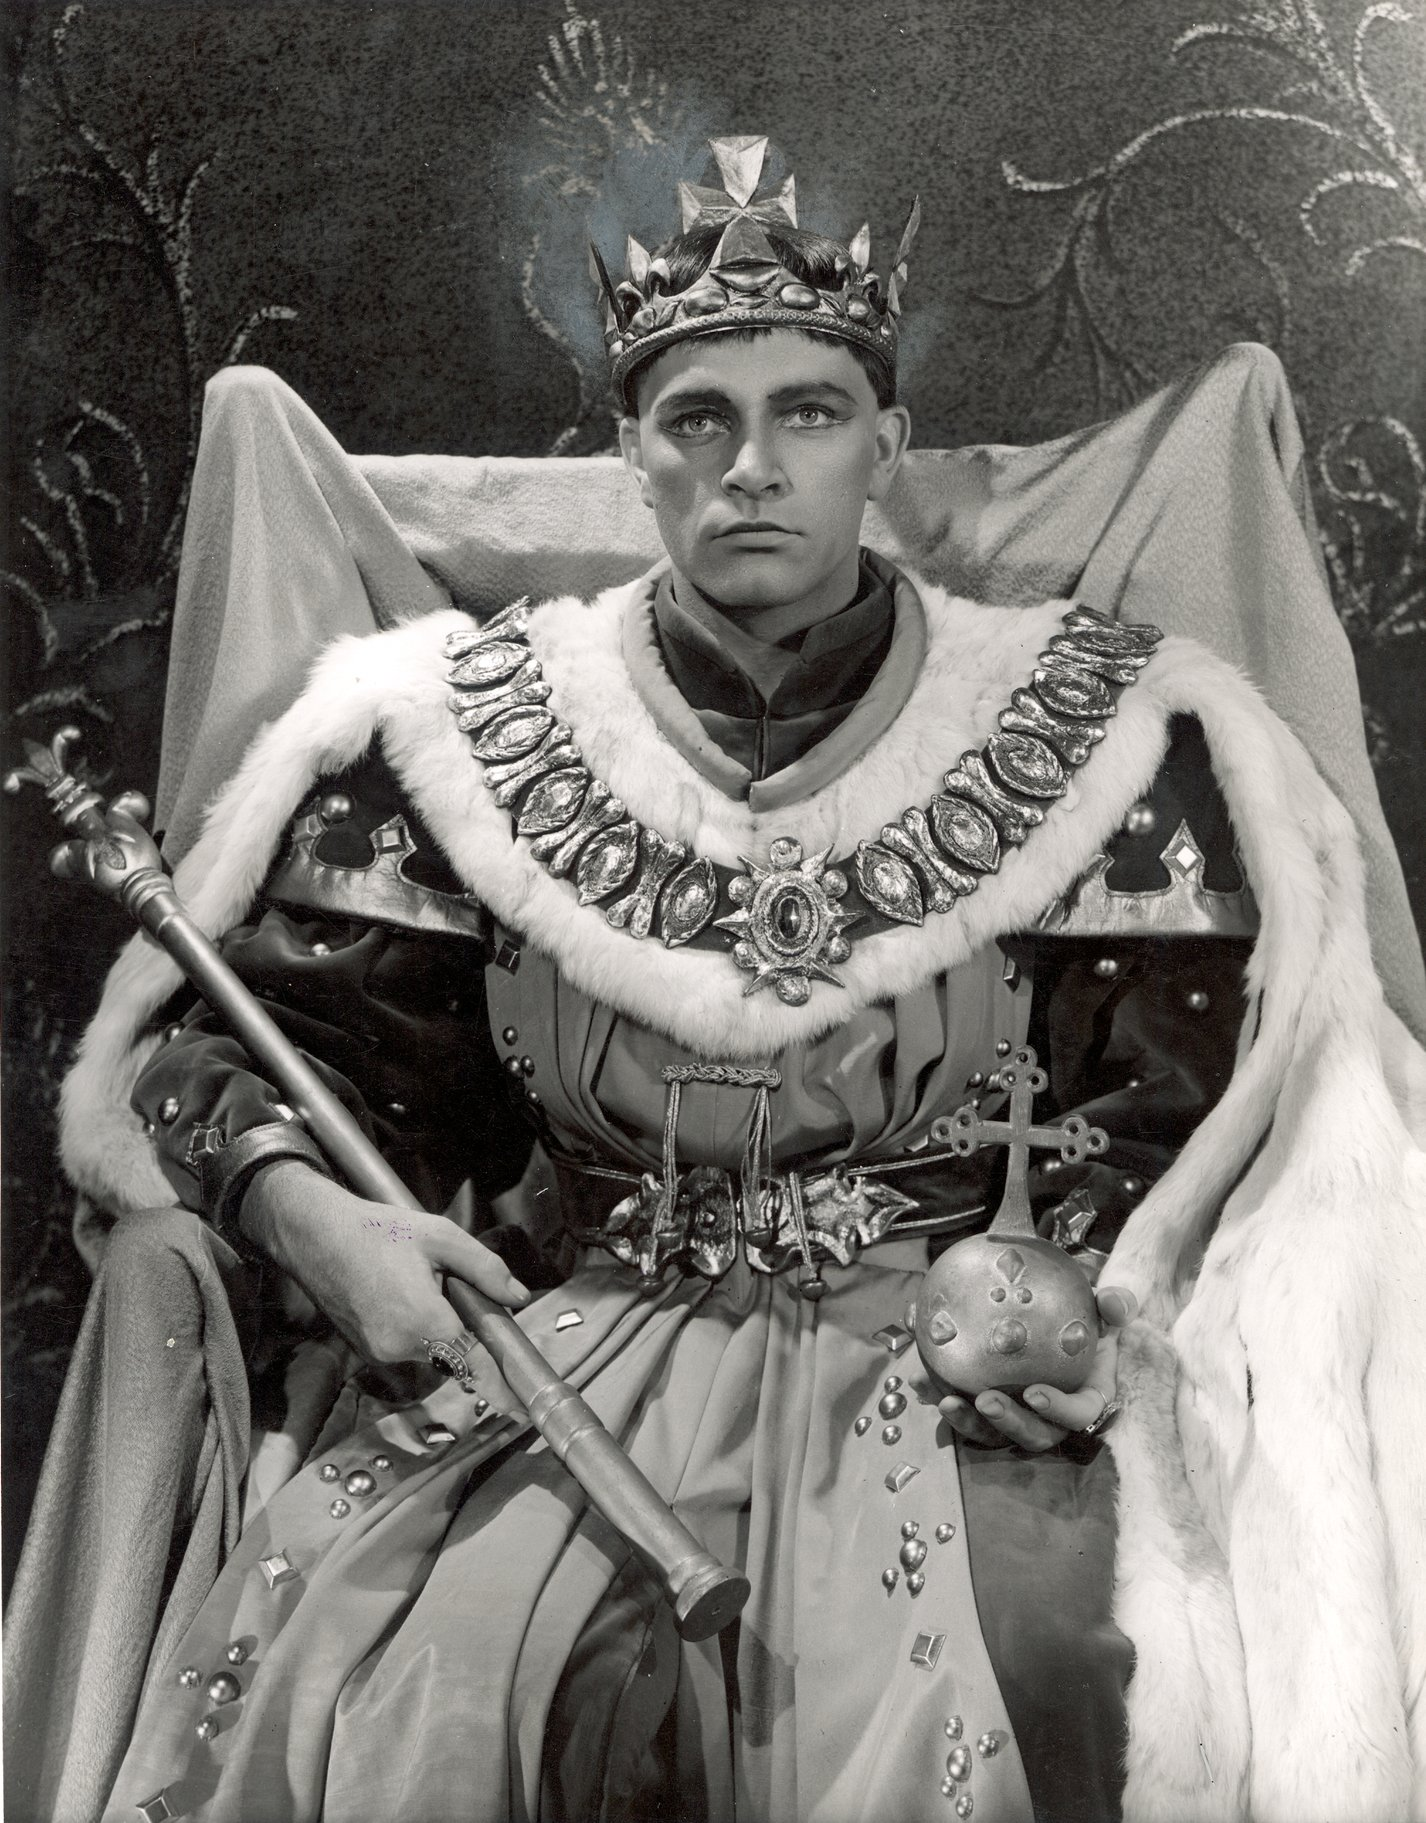 Richard Burton as Henry V sits in his throne dressed in ceremonial robes with sceptre and orb, wearing a crown, in the 1951 production of Henry V